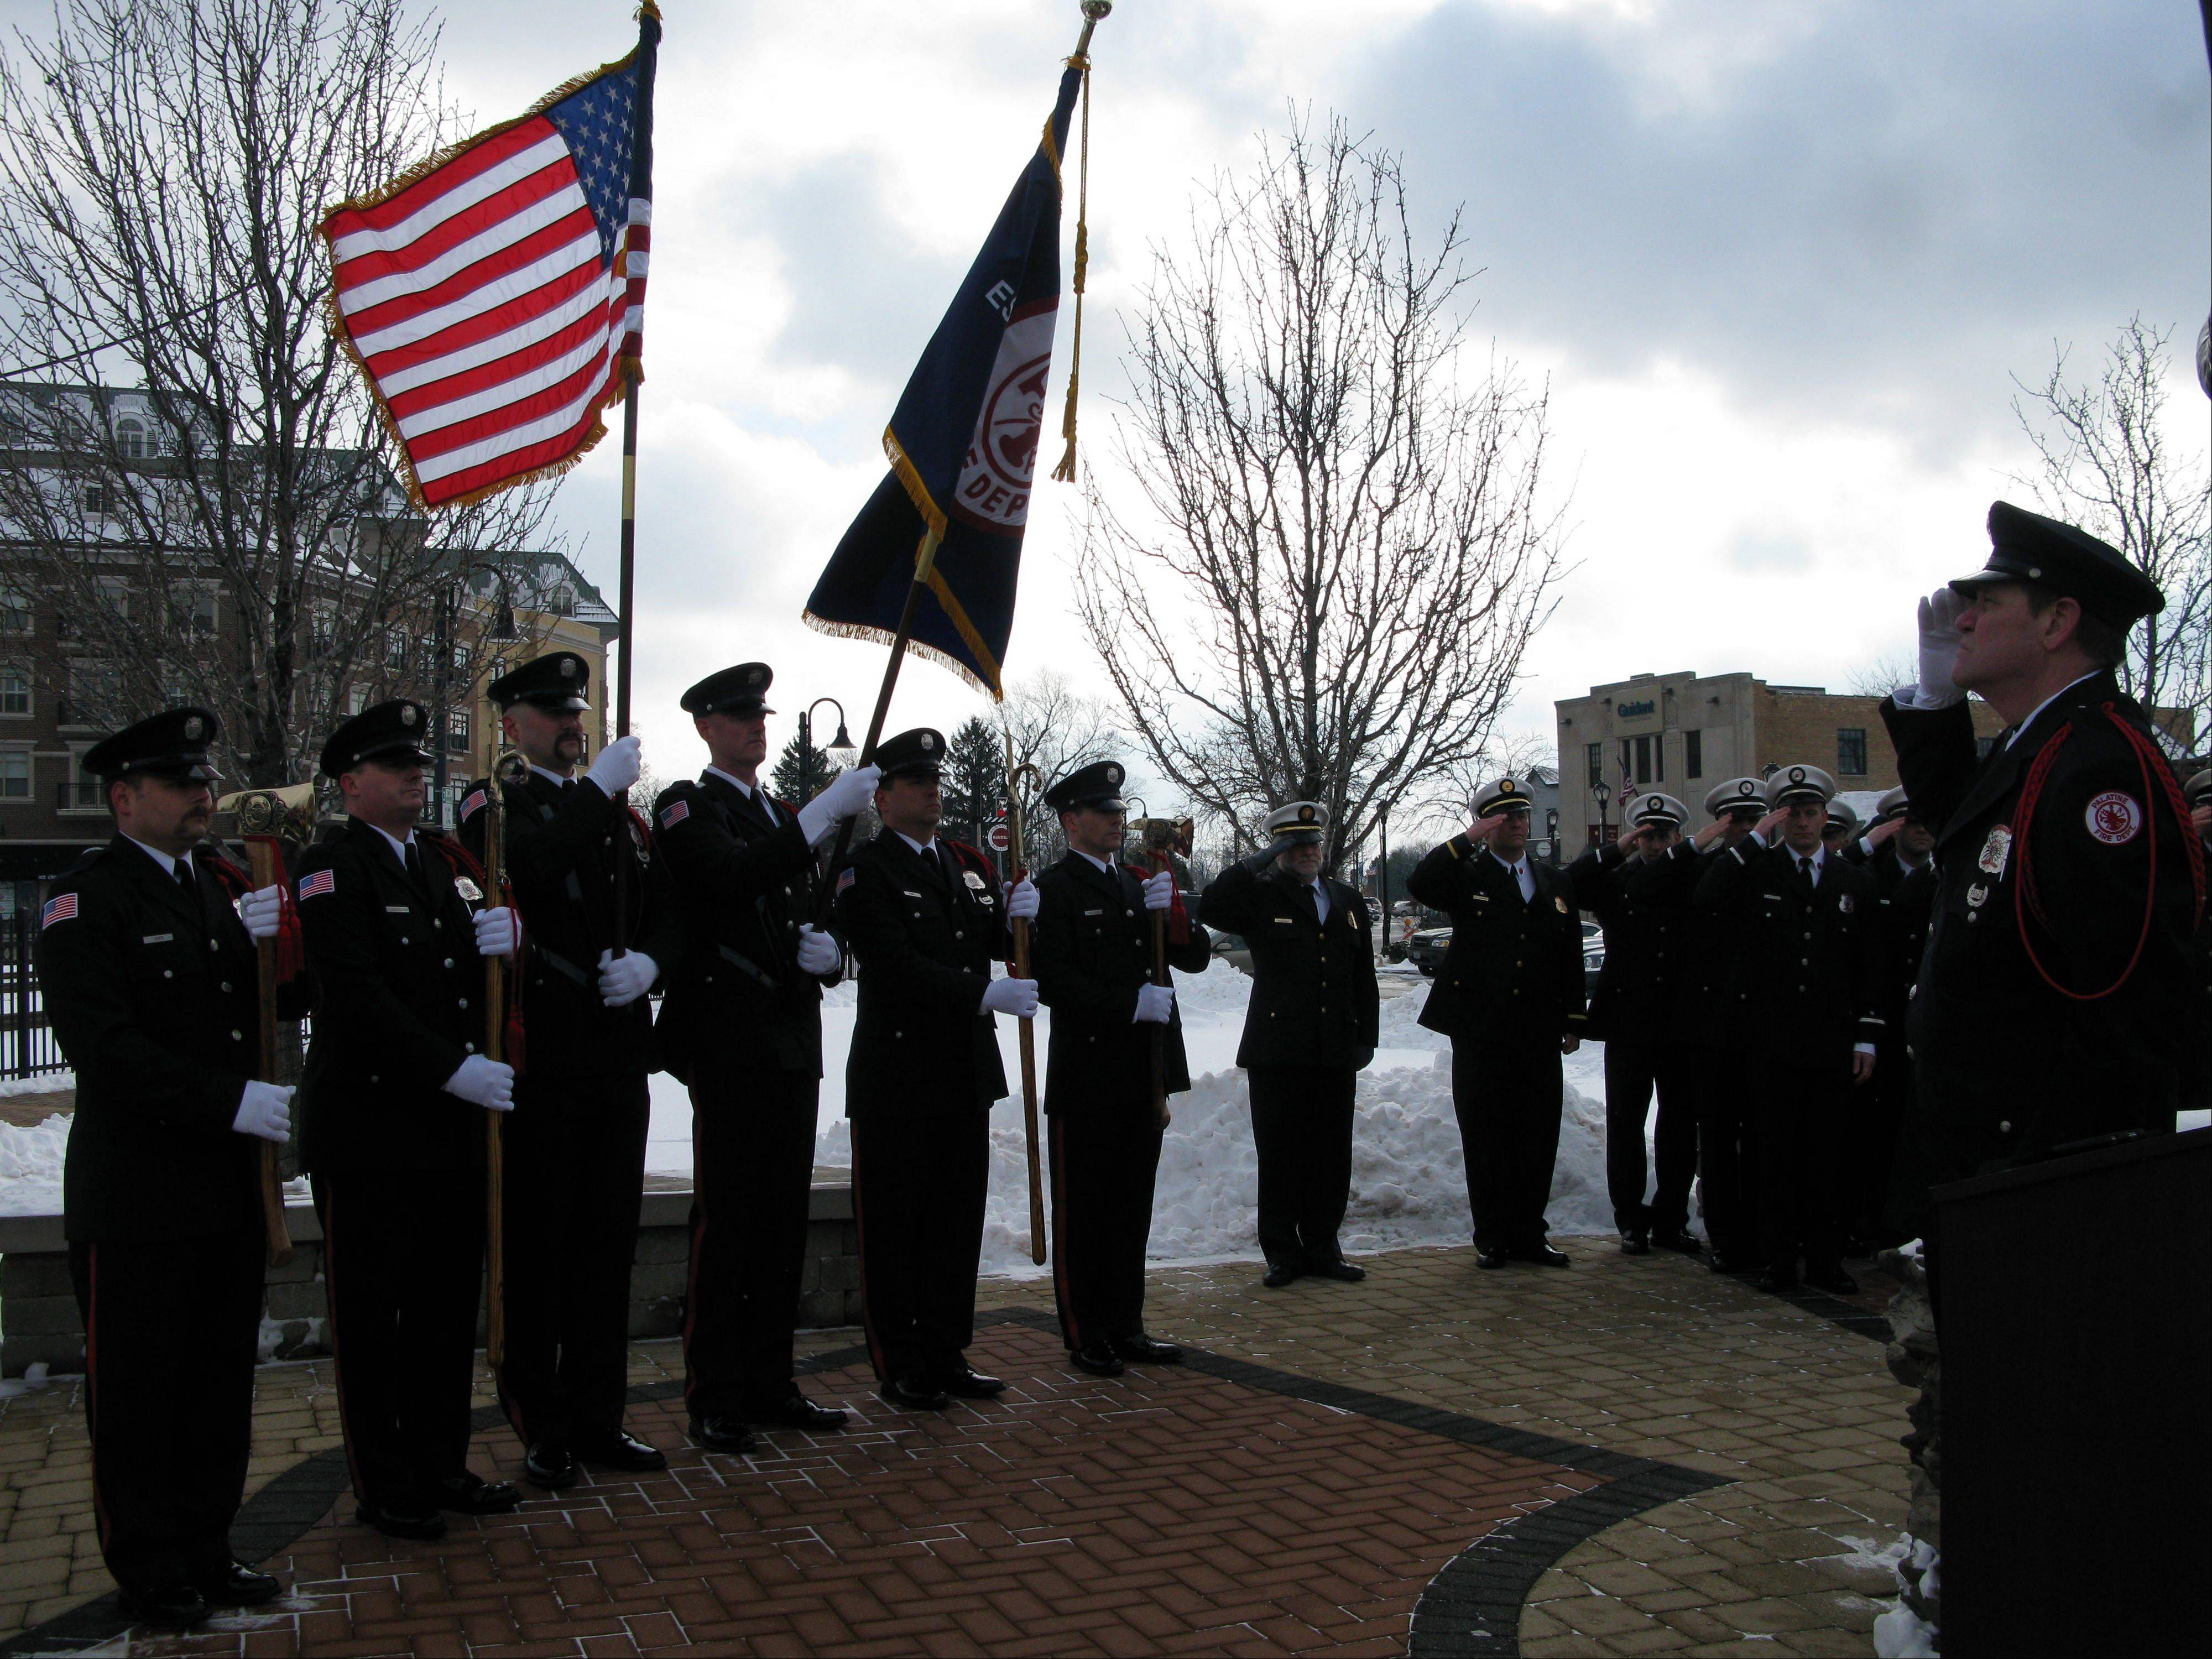 Retired firefighter Mark Hallett, right, salutes the flag carried by the Palatine Fire Department Honor Guard Saturday during a ceremony honoring the sacrifice made by three volunteer firefighters, John Wilson, Richard Freeman and Warren Ahlgrim, who perished during a fire rescue on Feb. 23, 1973.